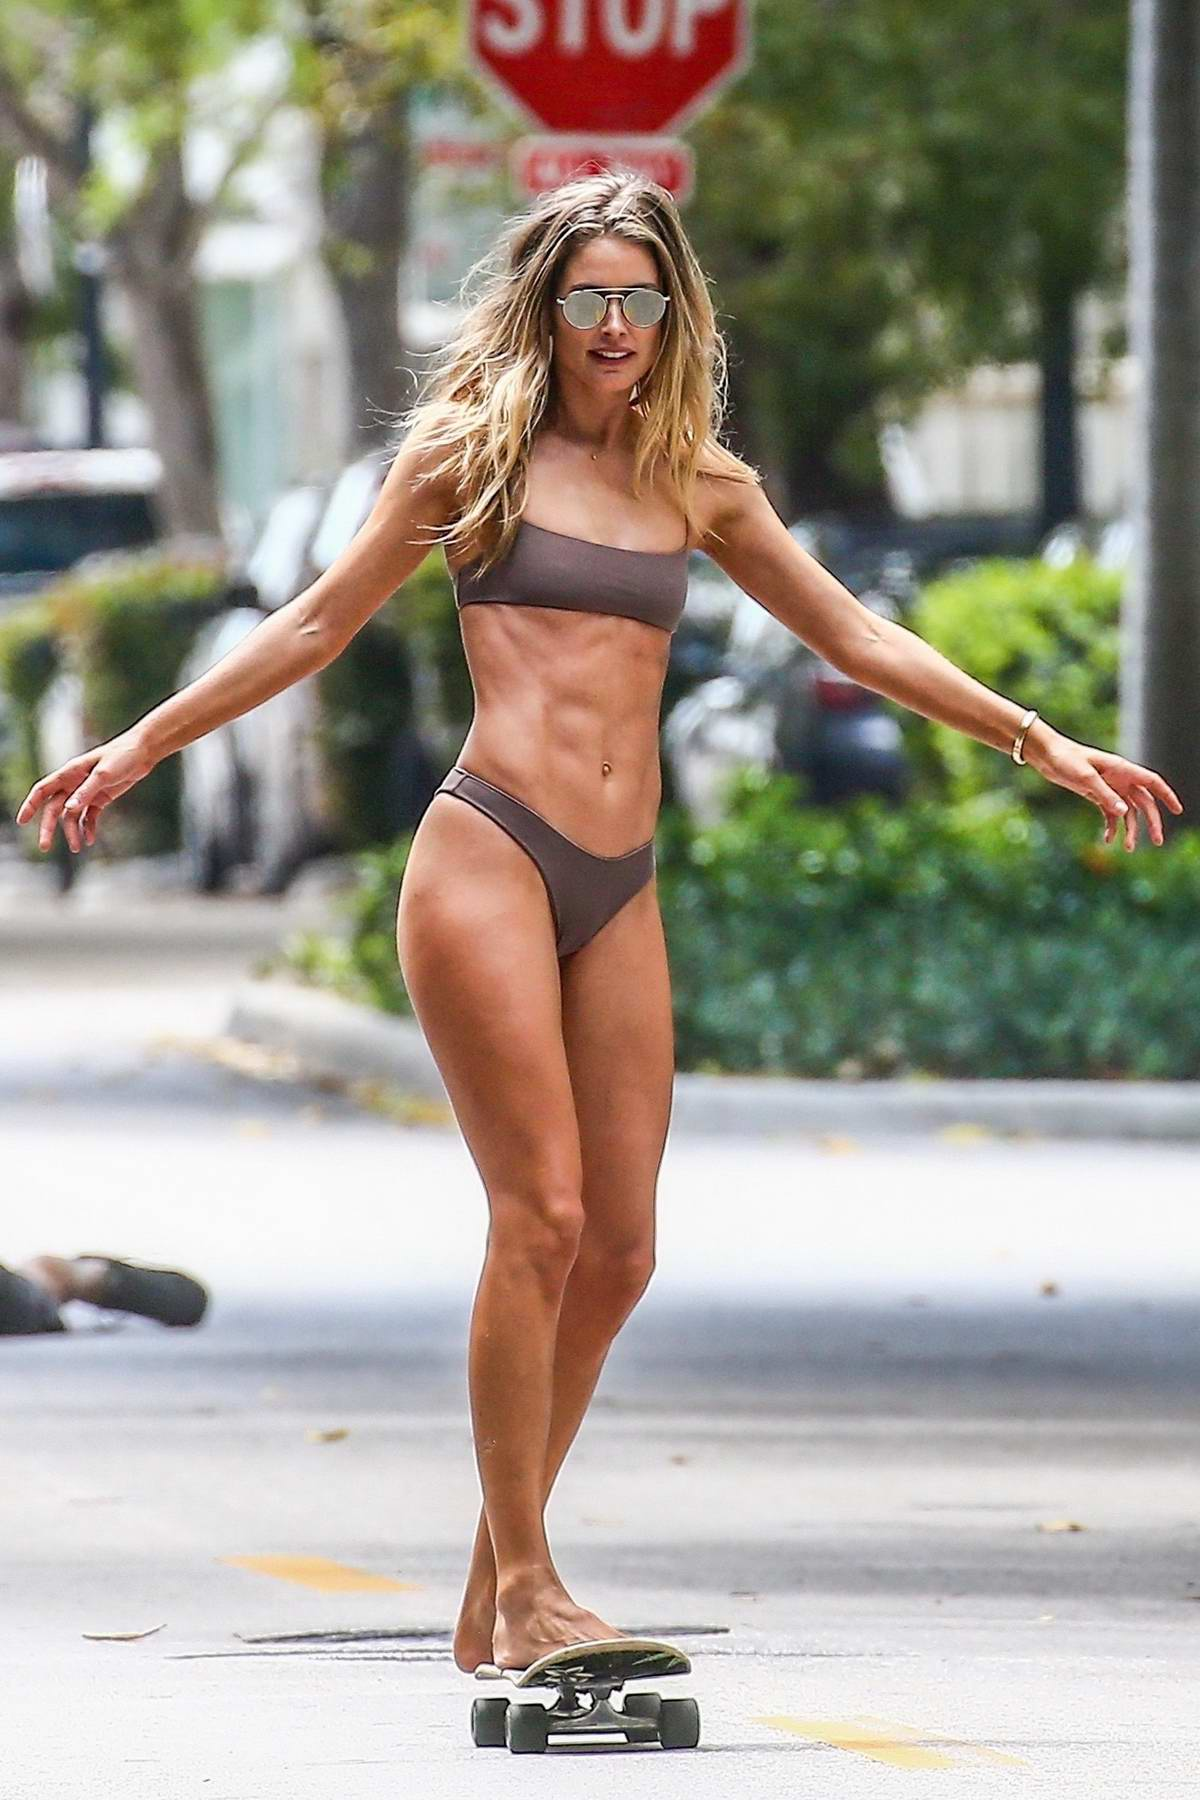 Doutzen Kroes looks incredible in a bikini while posing on a skateboard during a photo shoot in Miami, Florida